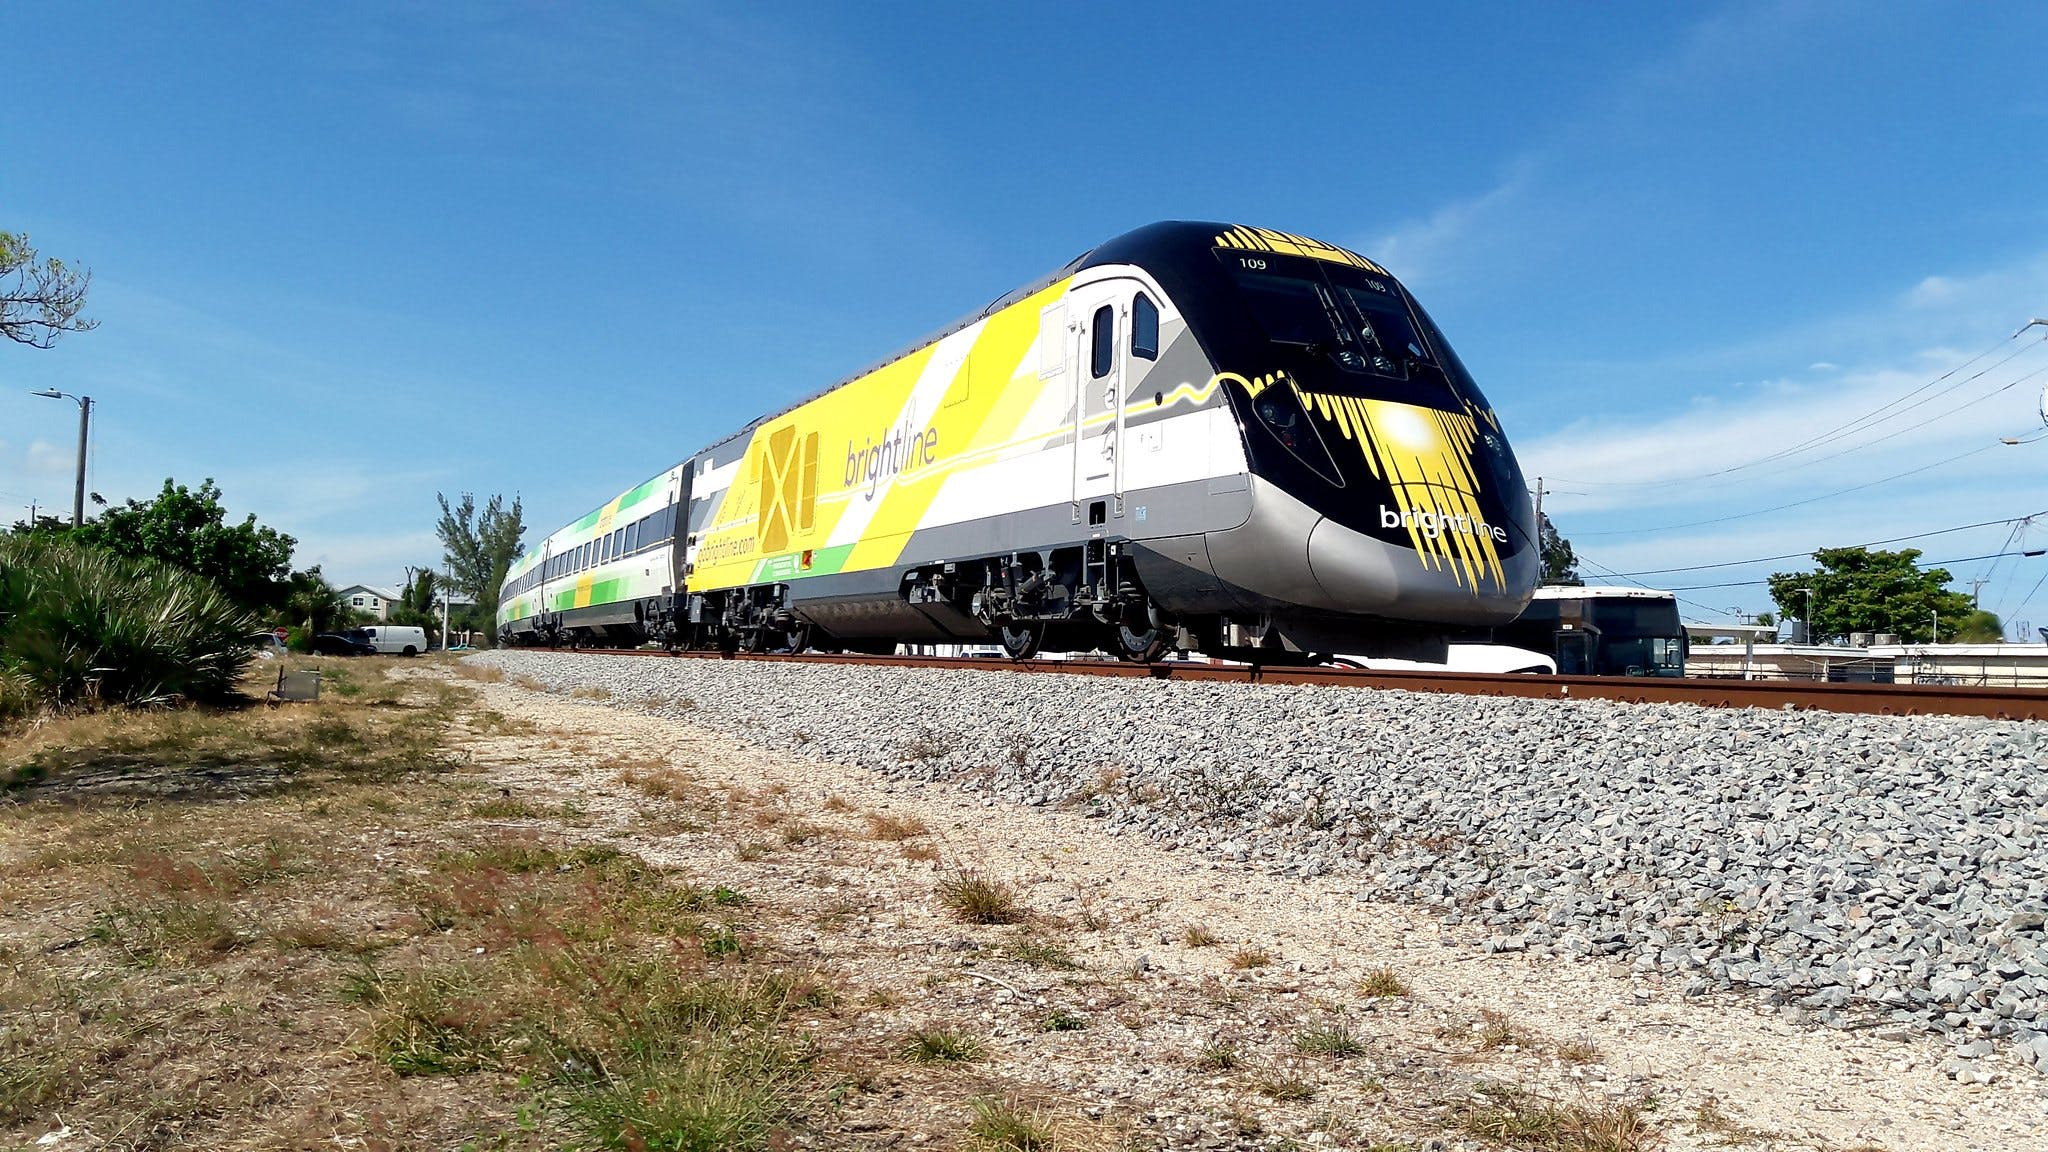 High Speed Rail Line from Cali to Las Vegas